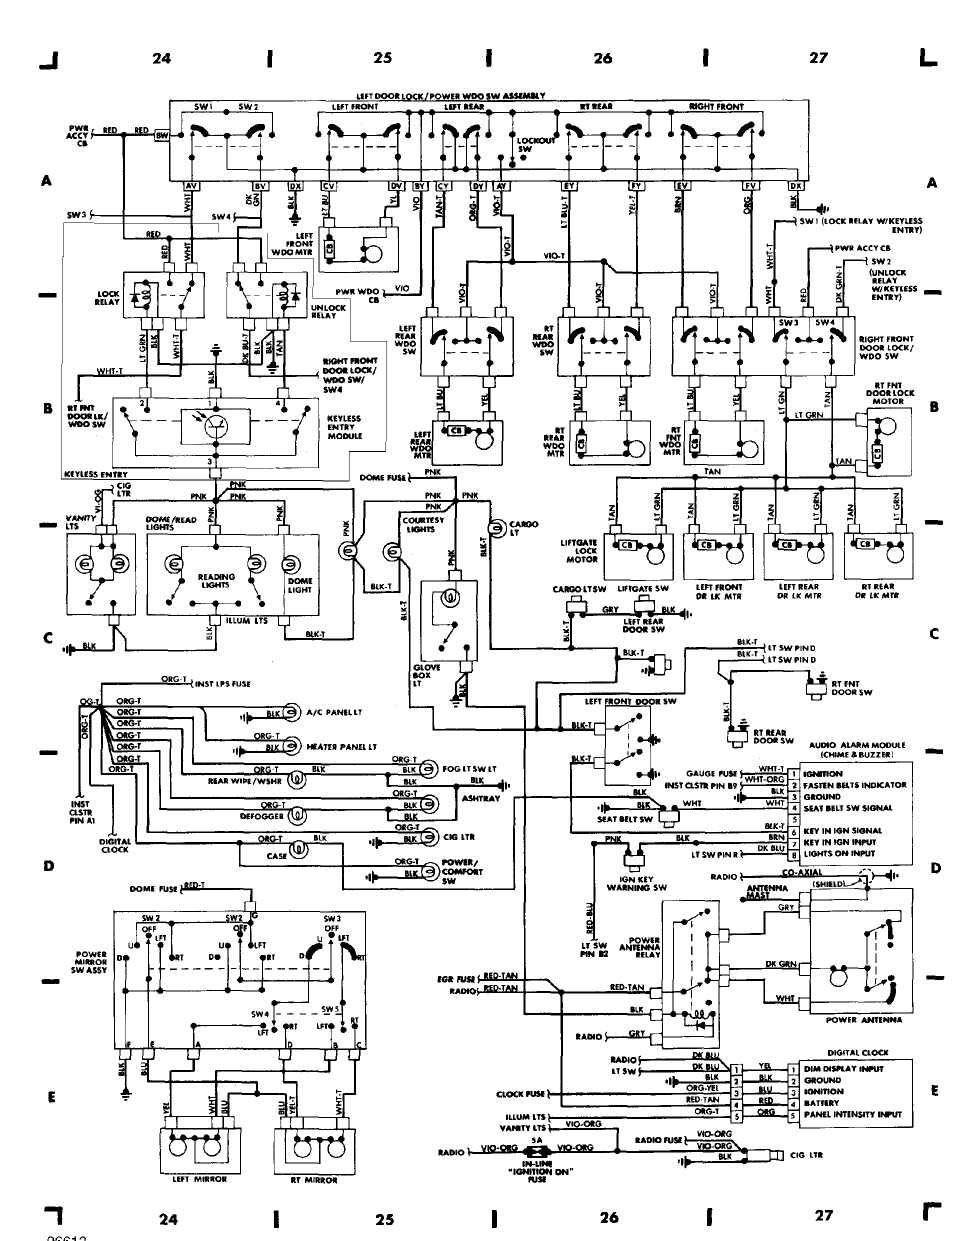 wiring_diagrams_html_61f5e0ad wiring diagrams 1984 1991 jeep cherokee (xj) jeep 93 Honda Accord Fuse Box Diagram at soozxer.org